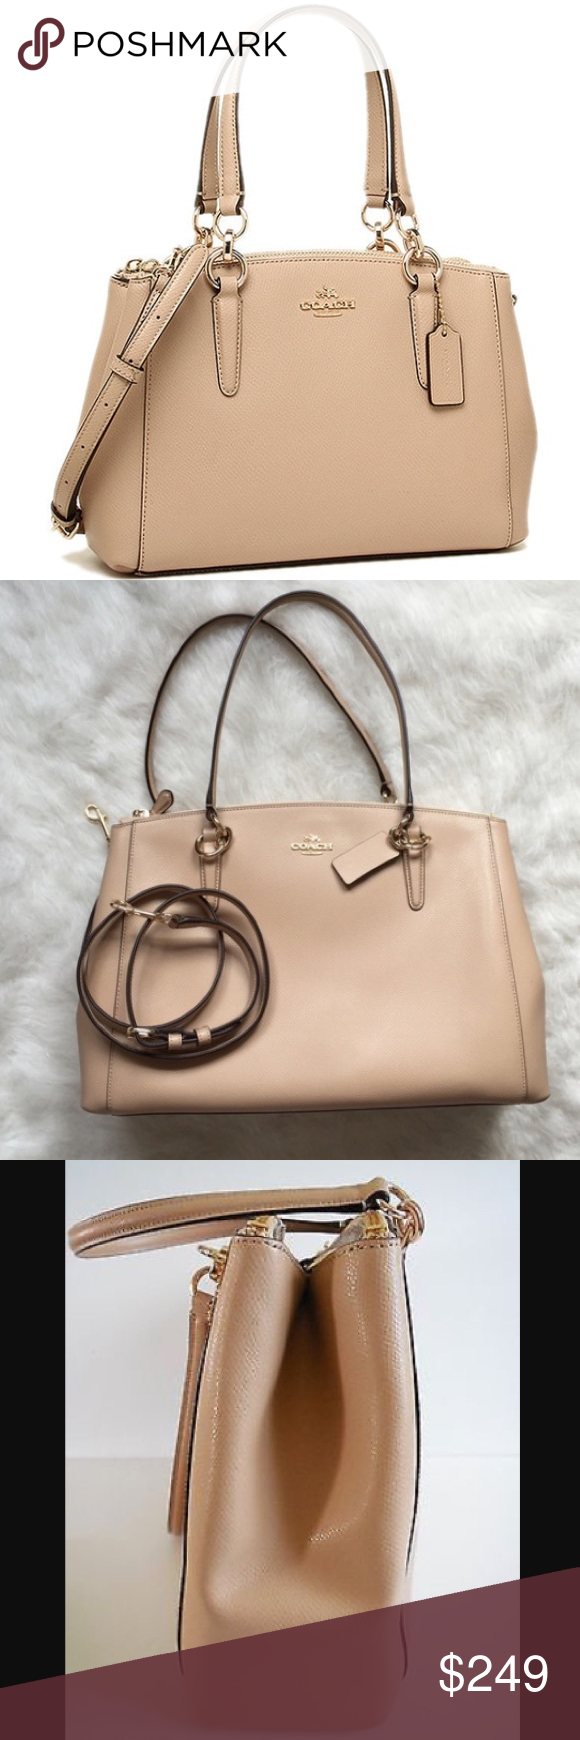 f9bf235a33a Coach Mini Two way crossbody nude leather bag Super cute crossbody bag from  coach! Course grain leather in nude pink! This carryall bag can be worn two  ways ...